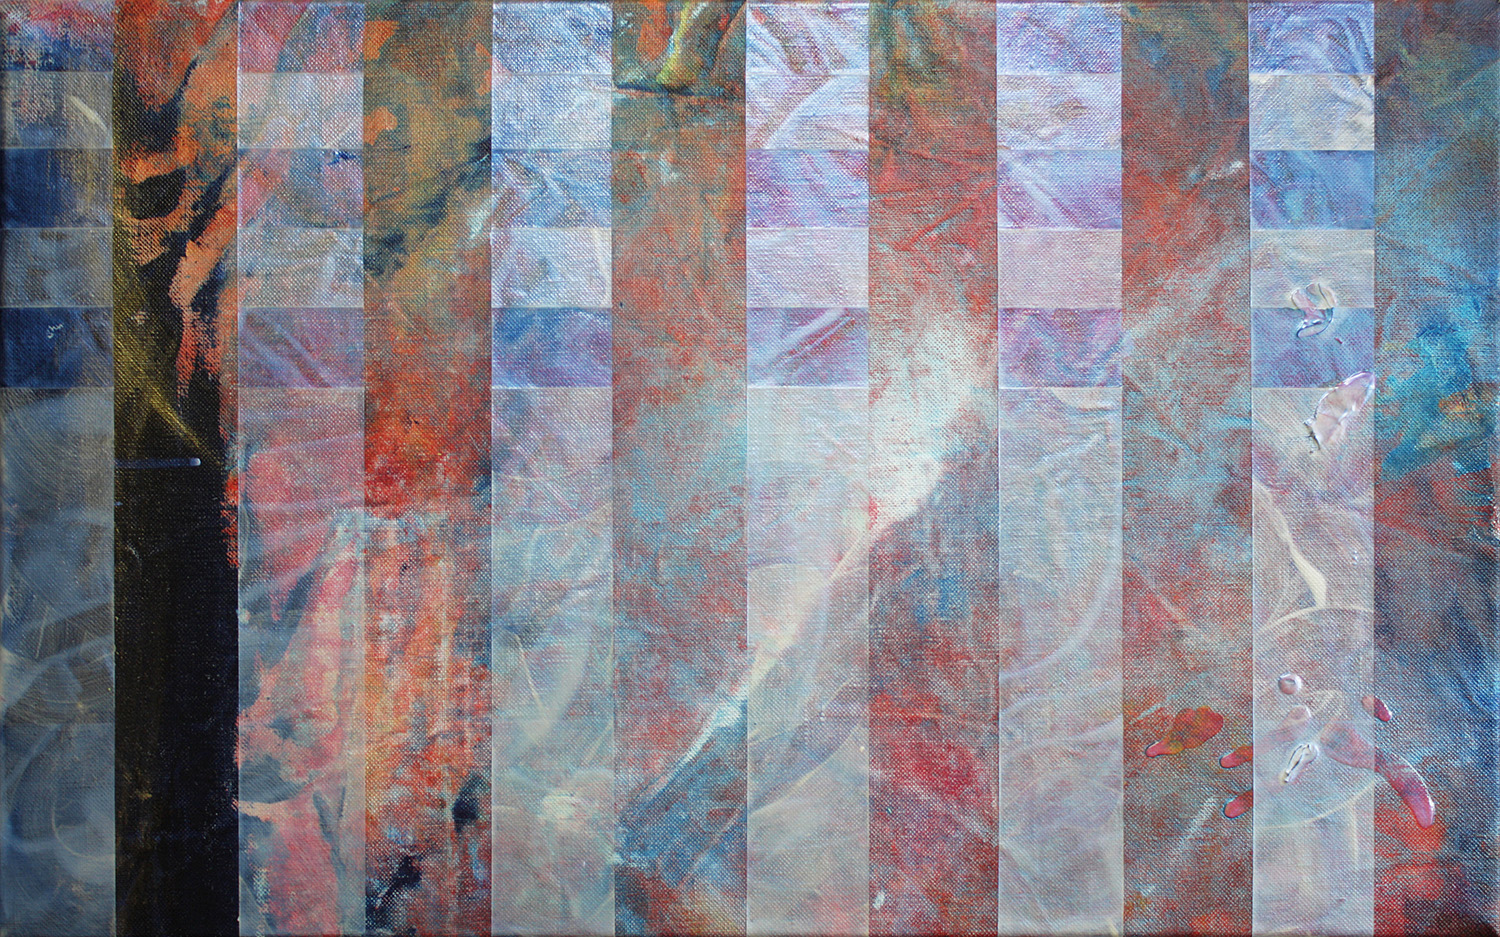 Seven  Steps , 2015, acrylic on linen,   38.5x61.5cm. (acquired)